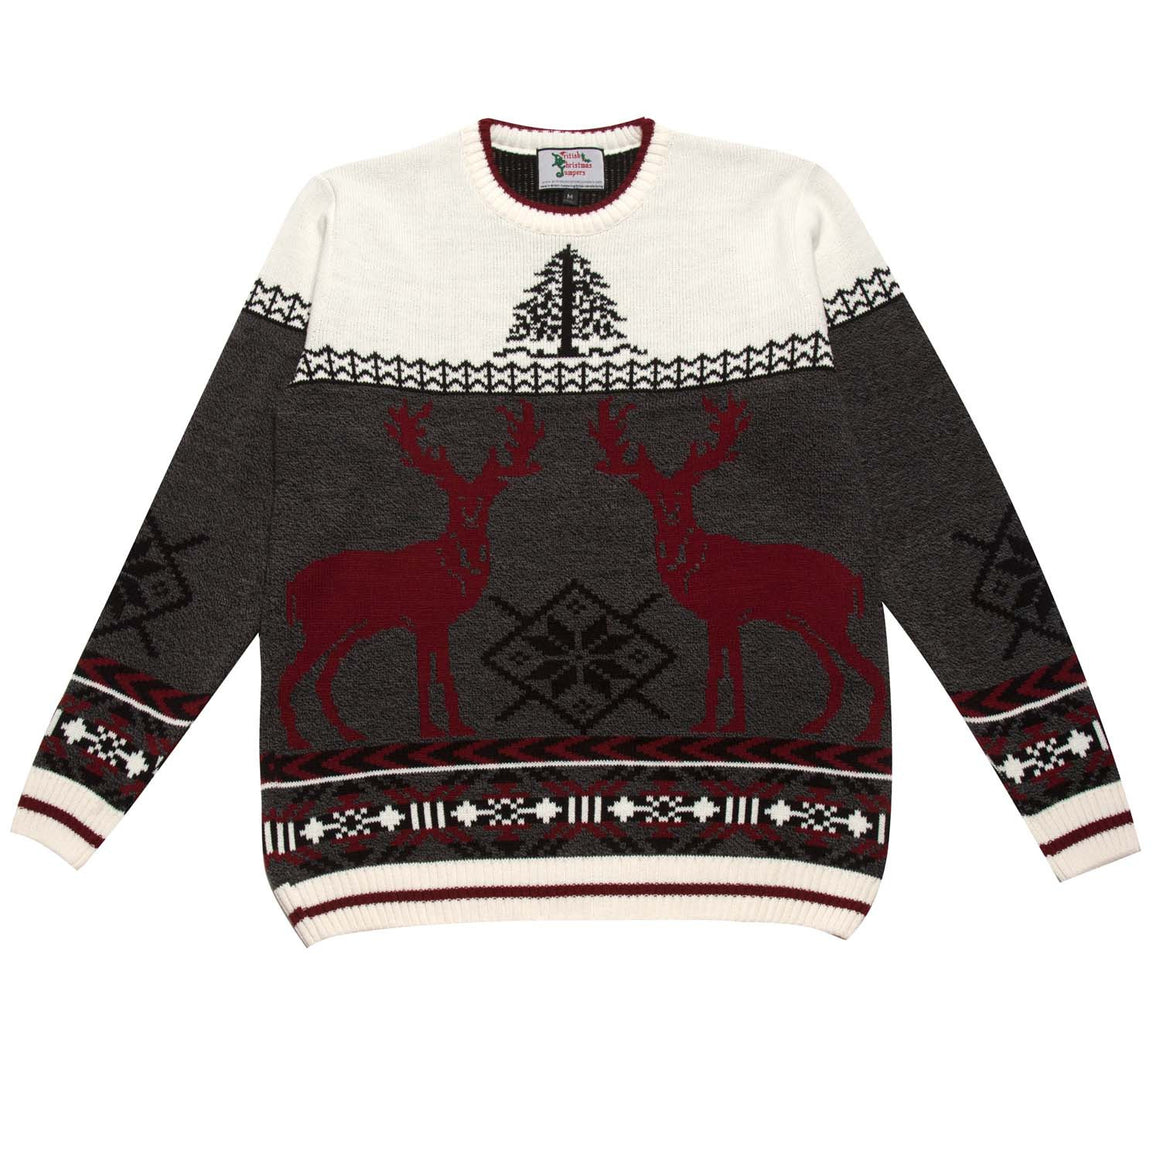 Red Deer - Womens Christmas Jumper - British Christmas Jumpers